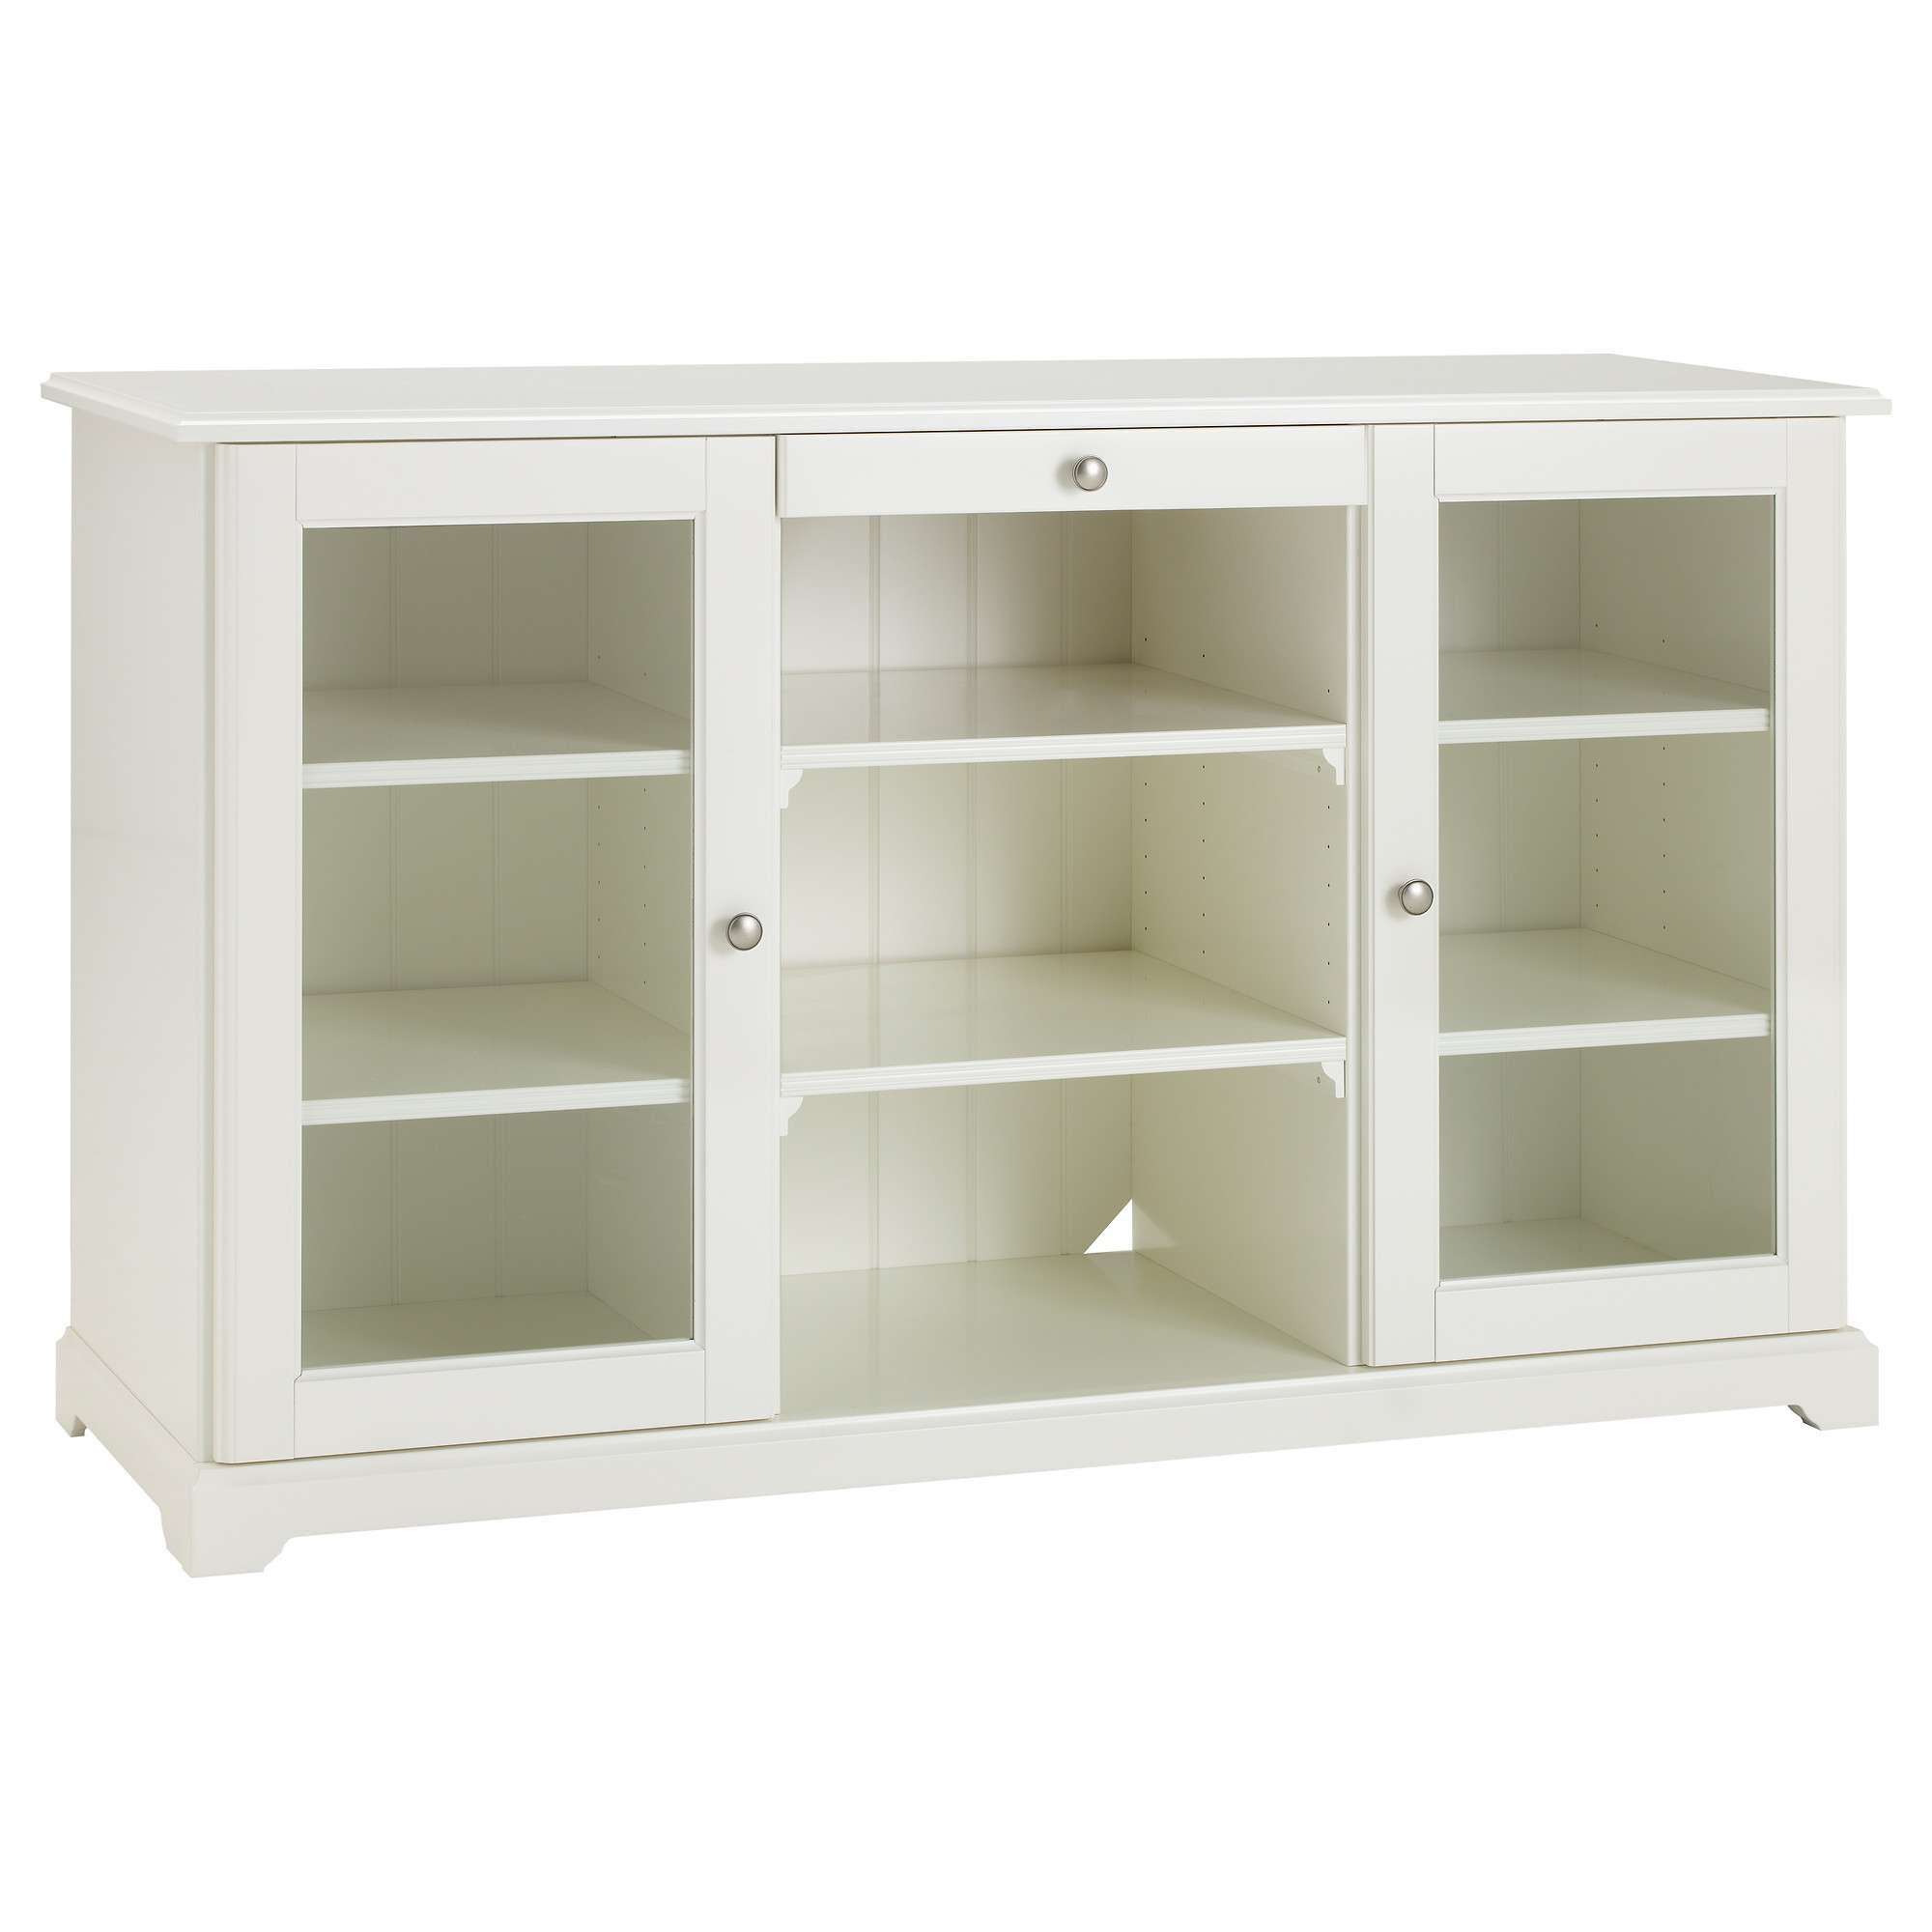 Liatorp Sideboard White 145x87 Cm – Ikea In Ikea Hemnes Sideboards (View 13 of 20)